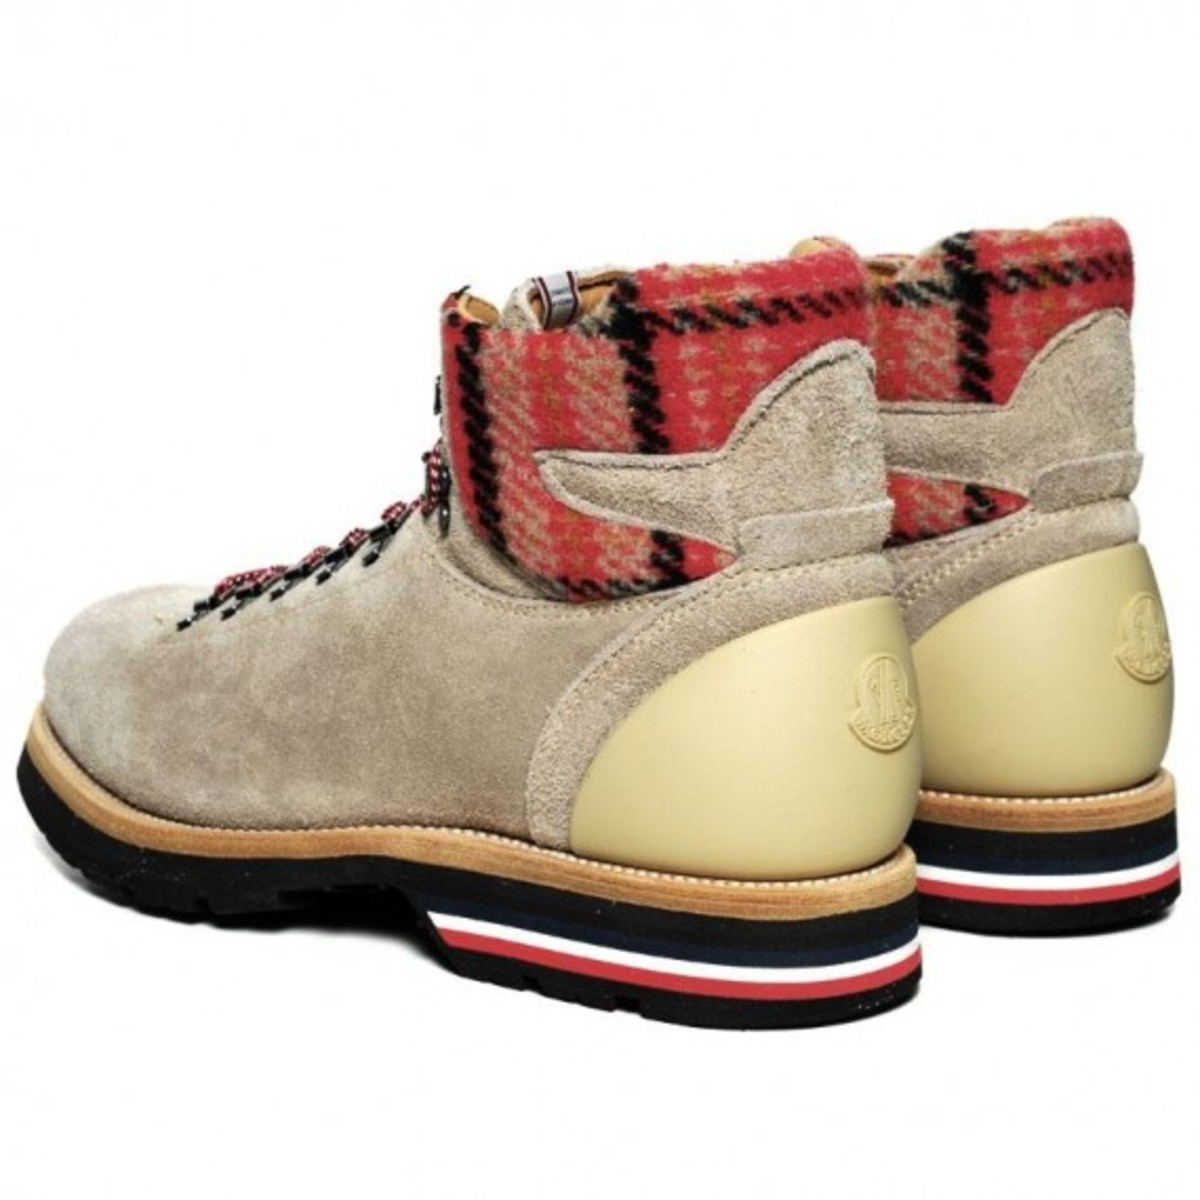 wool-patch-suede-mountain-boot-03